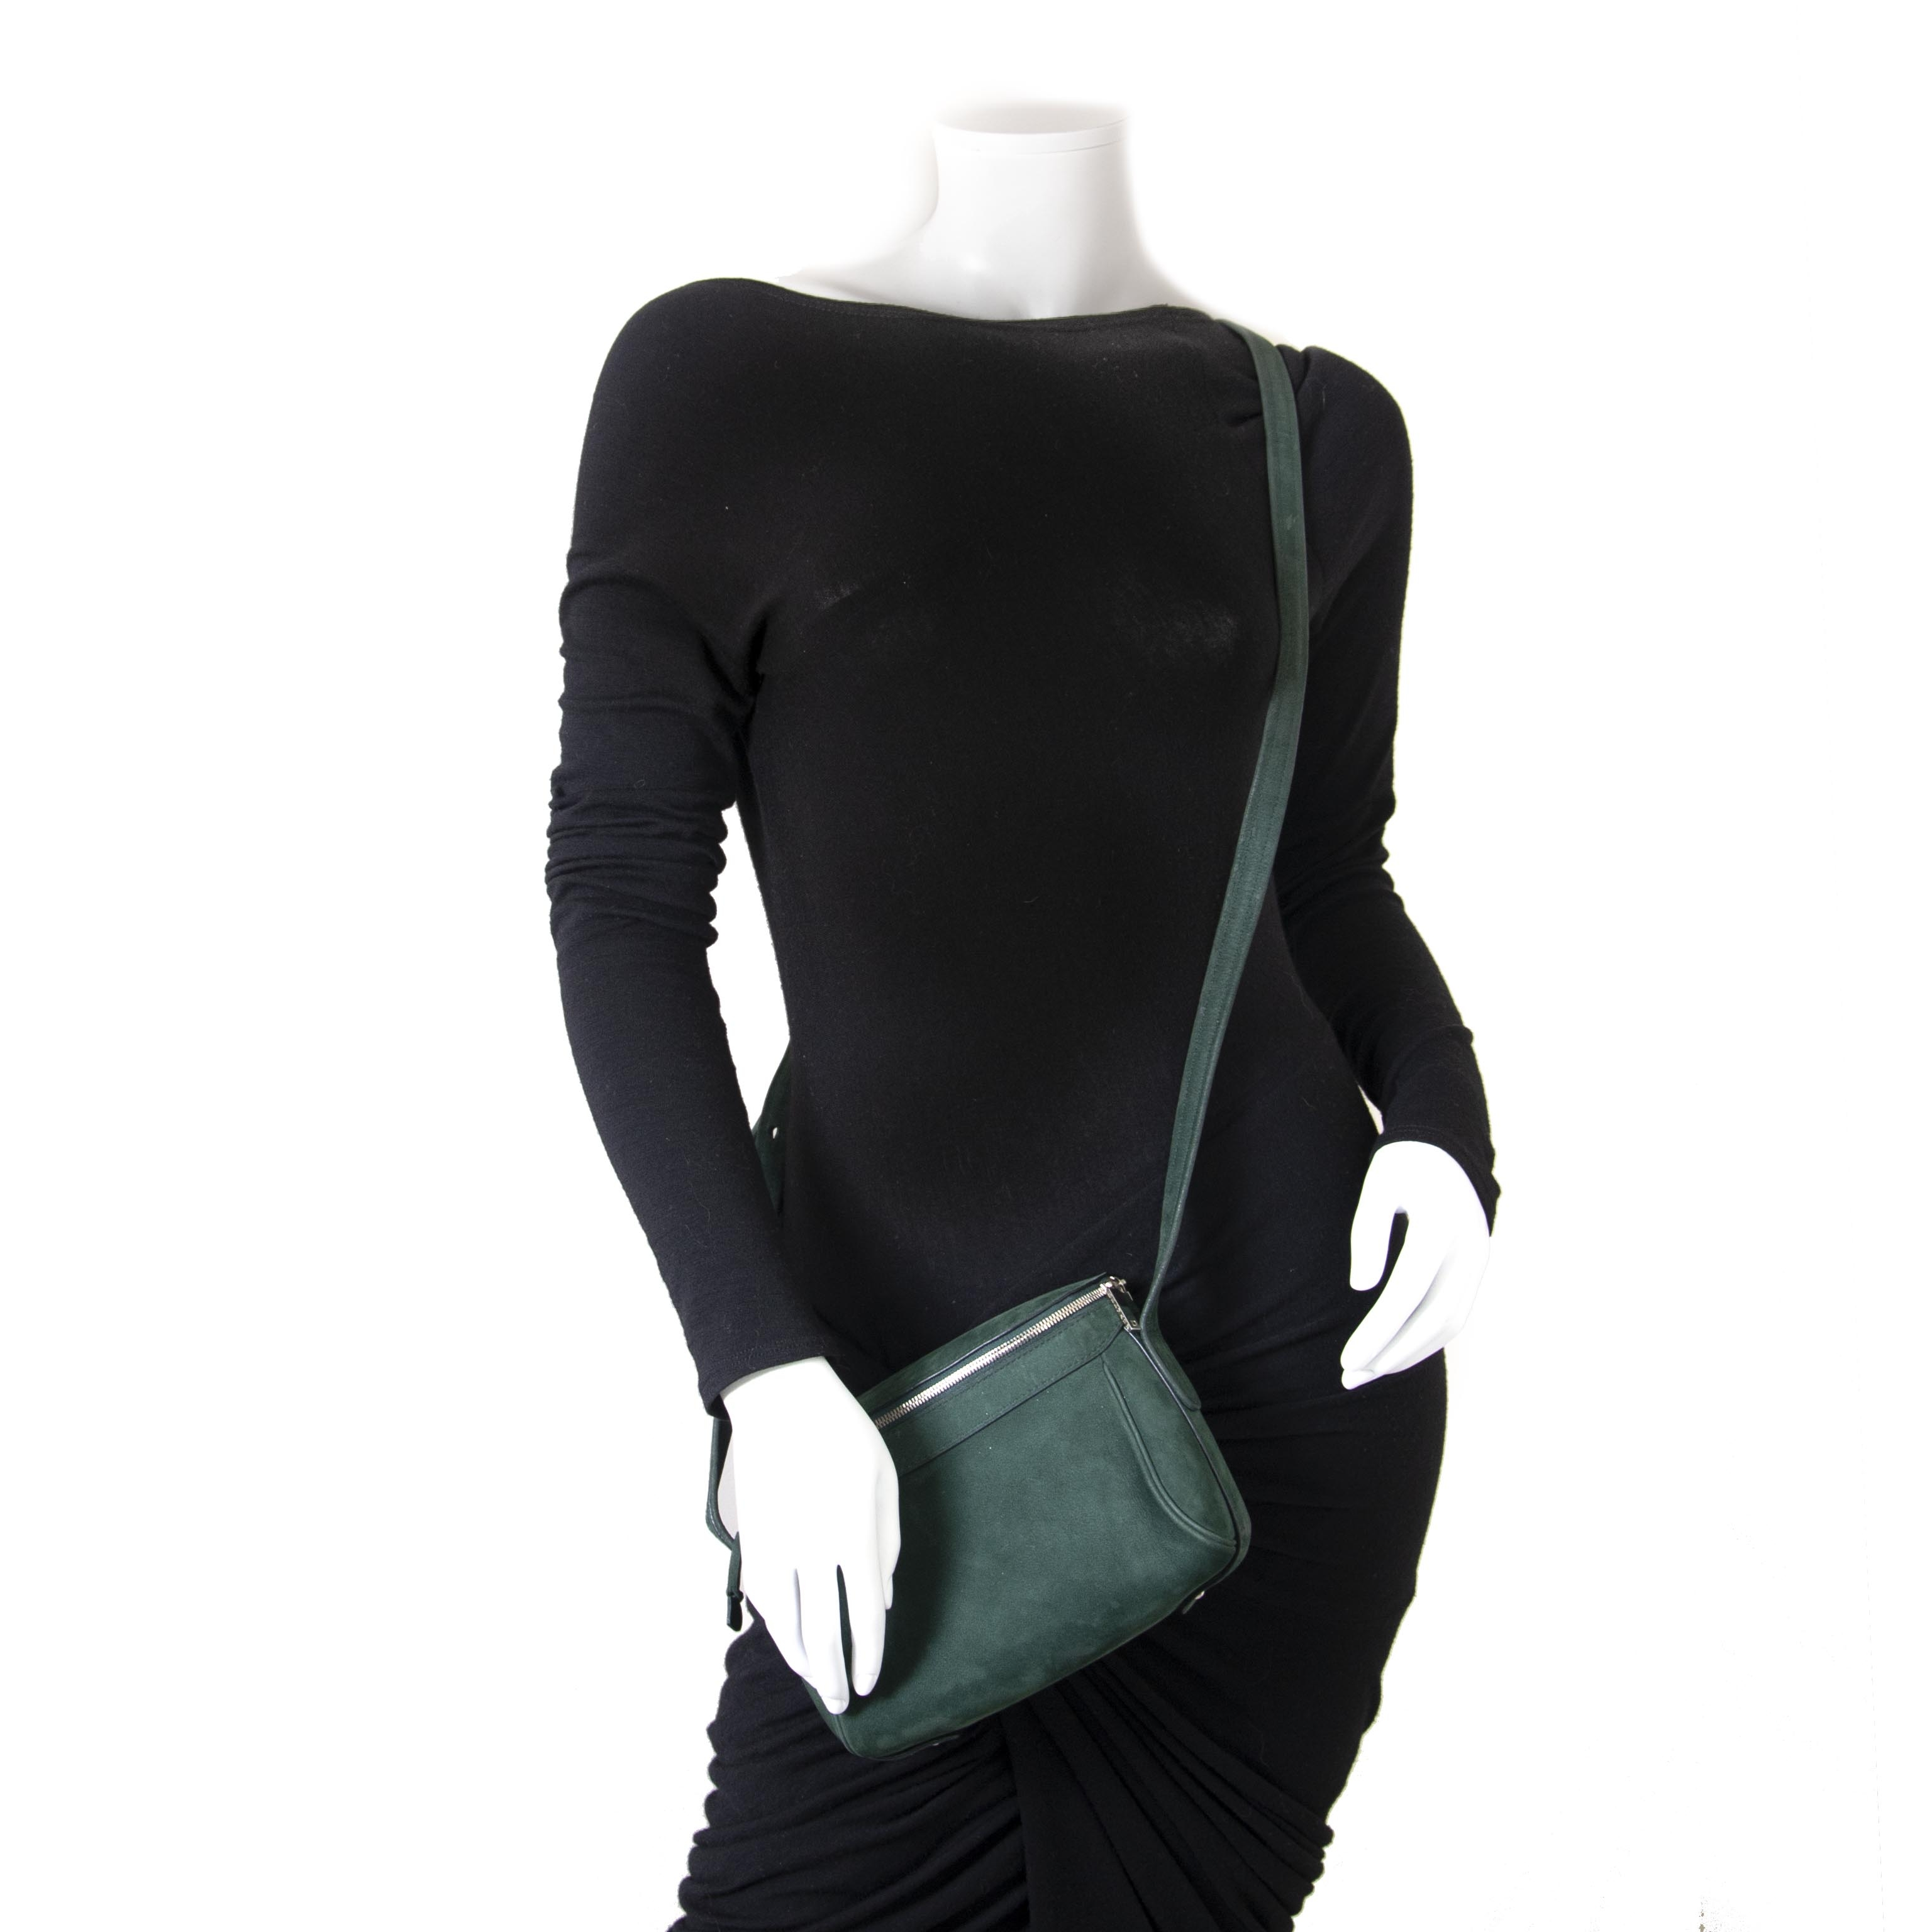 Are you looking for an authentic Delvaux Green Nubuck Shoulder Bag?